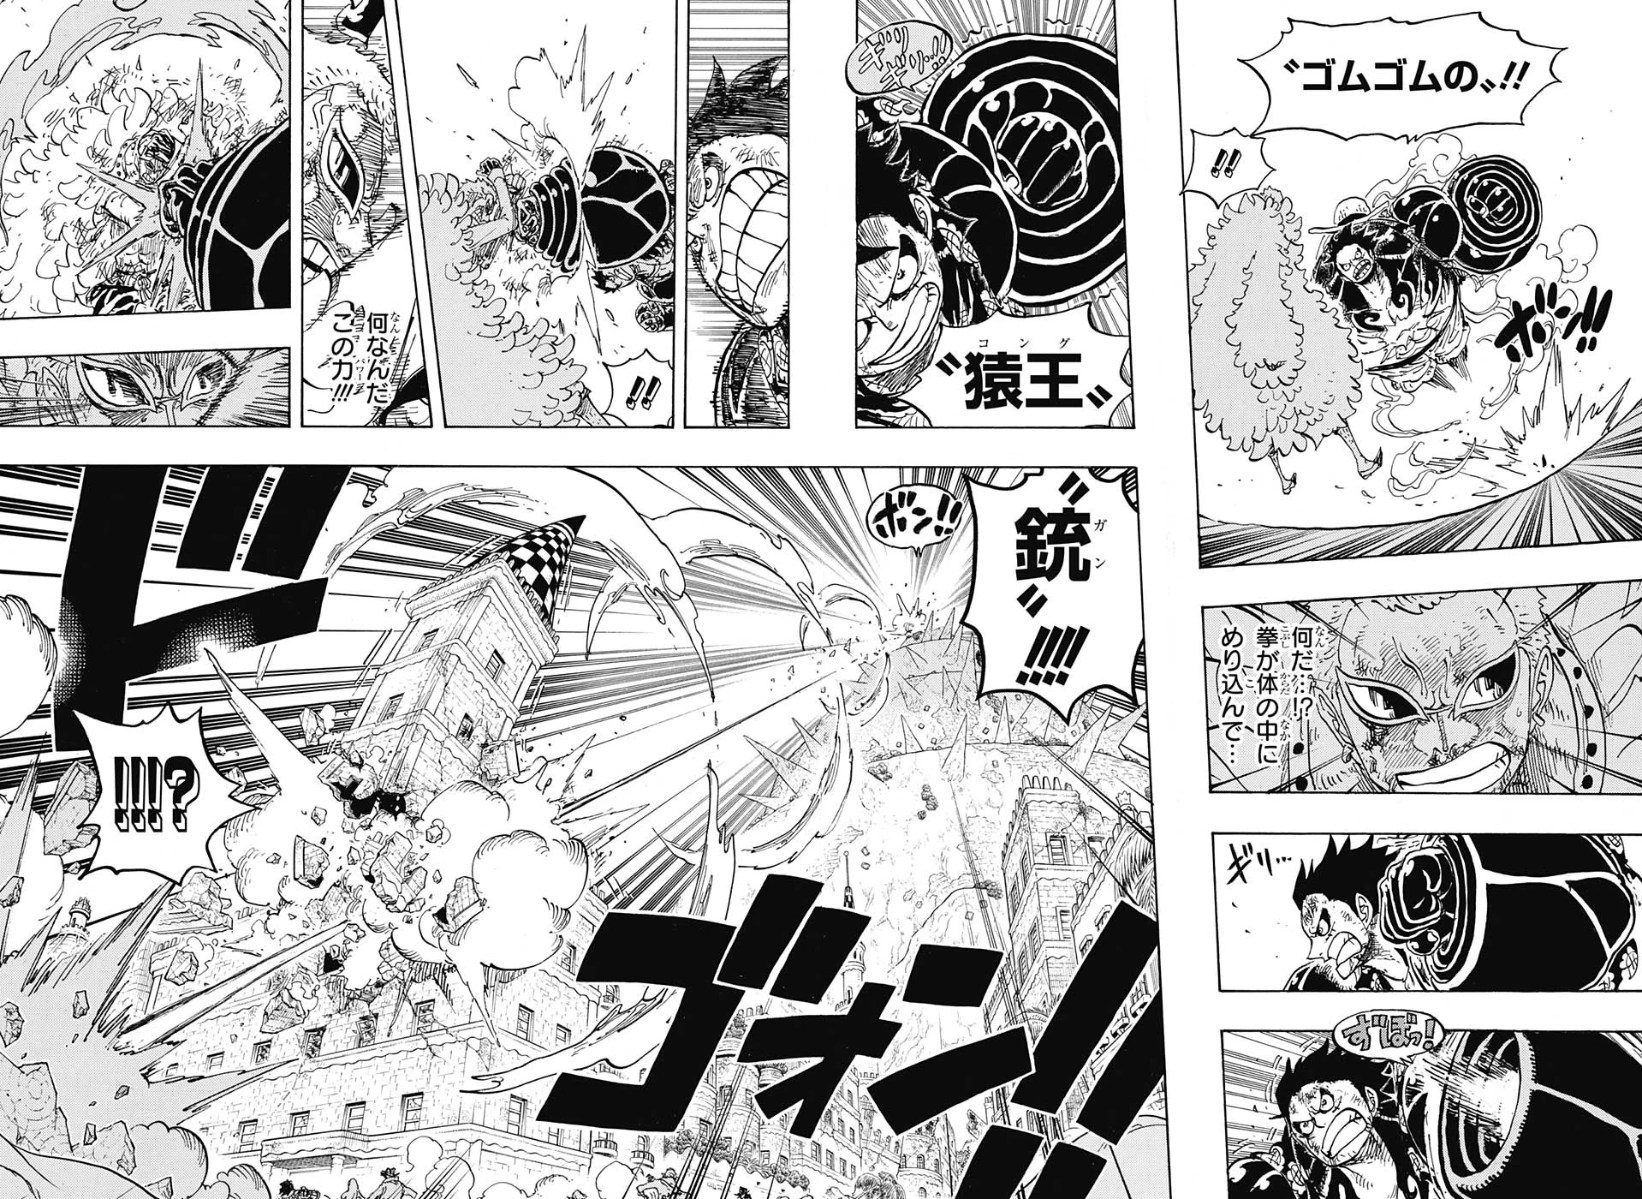 With gear second, luffy increases his blood circulation by pumping his blood through his body at higher speeds than normal. Explaining The Gears Mangahelpers